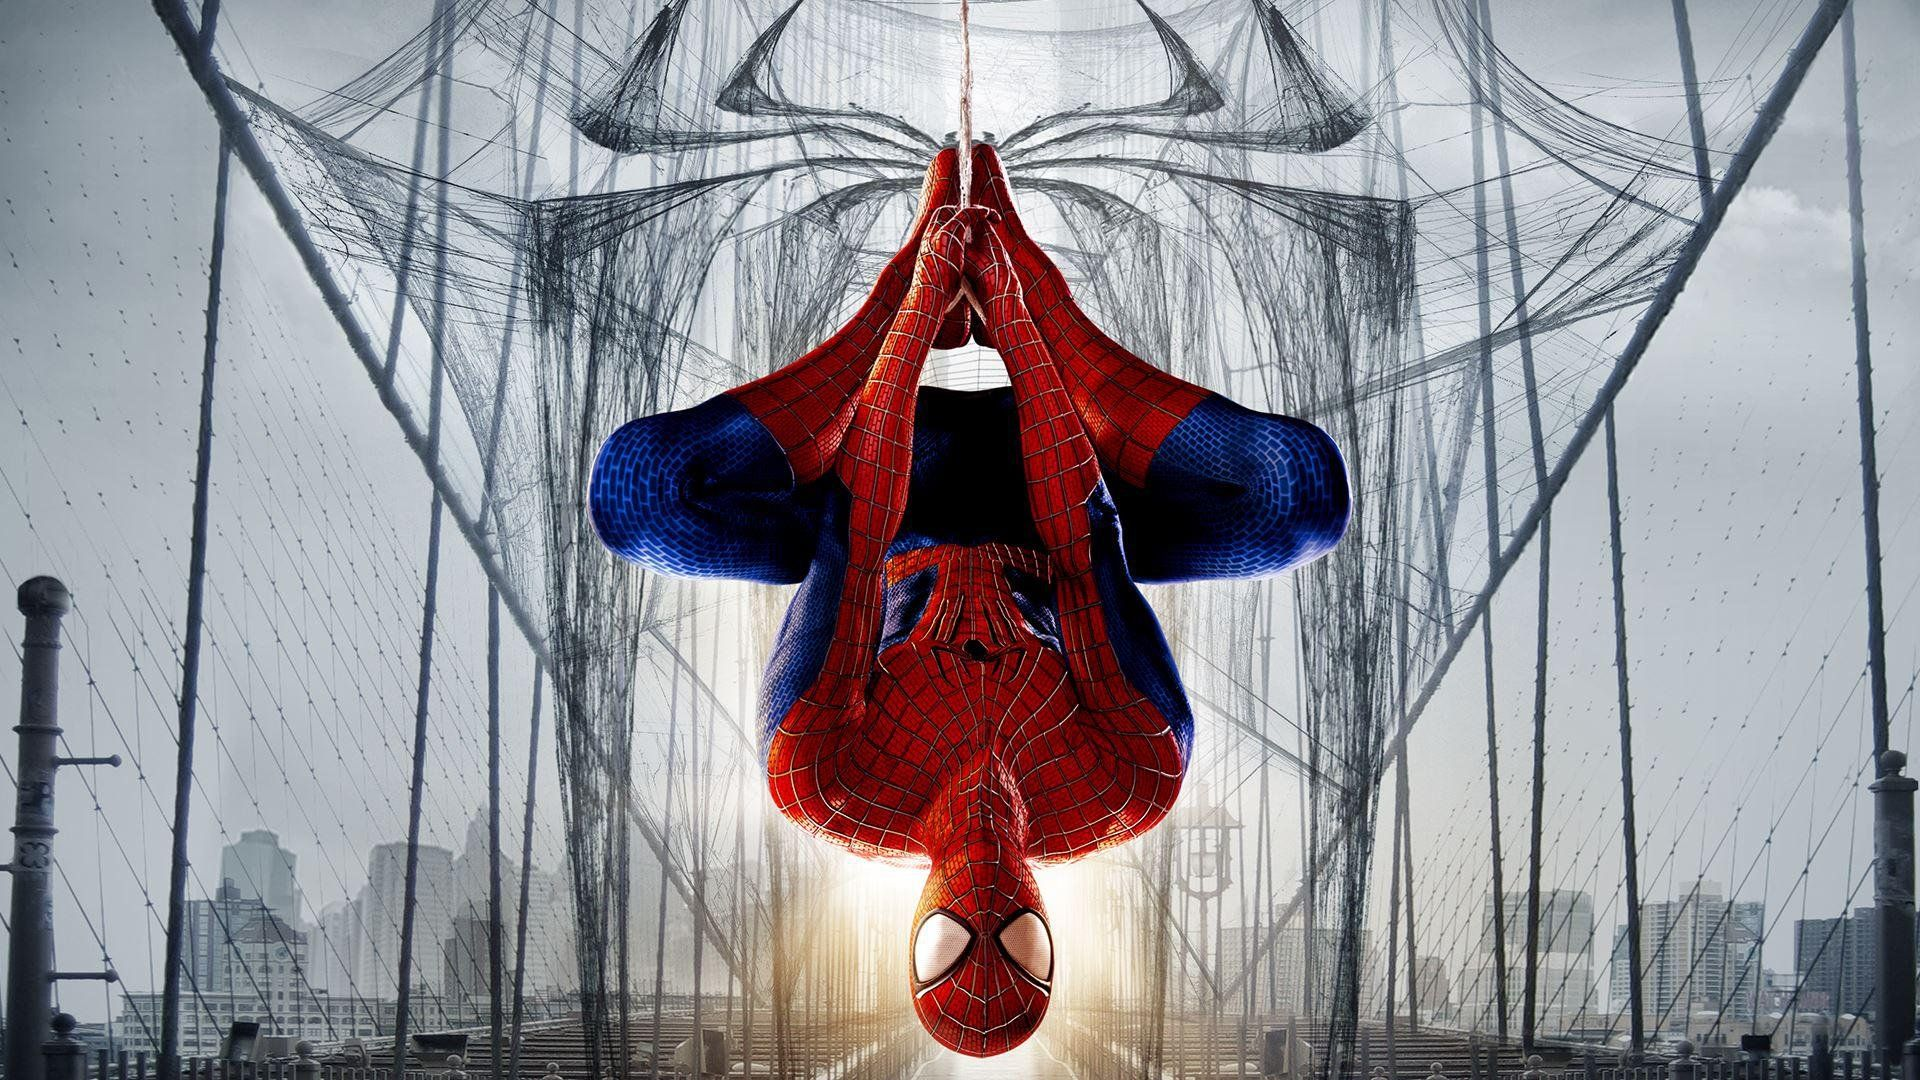 Amazing Wallpaper High Resolution Spiderman - baea8a2544c08ac1e08c2a67a0c8c6d4  Graphic_23787.jpg